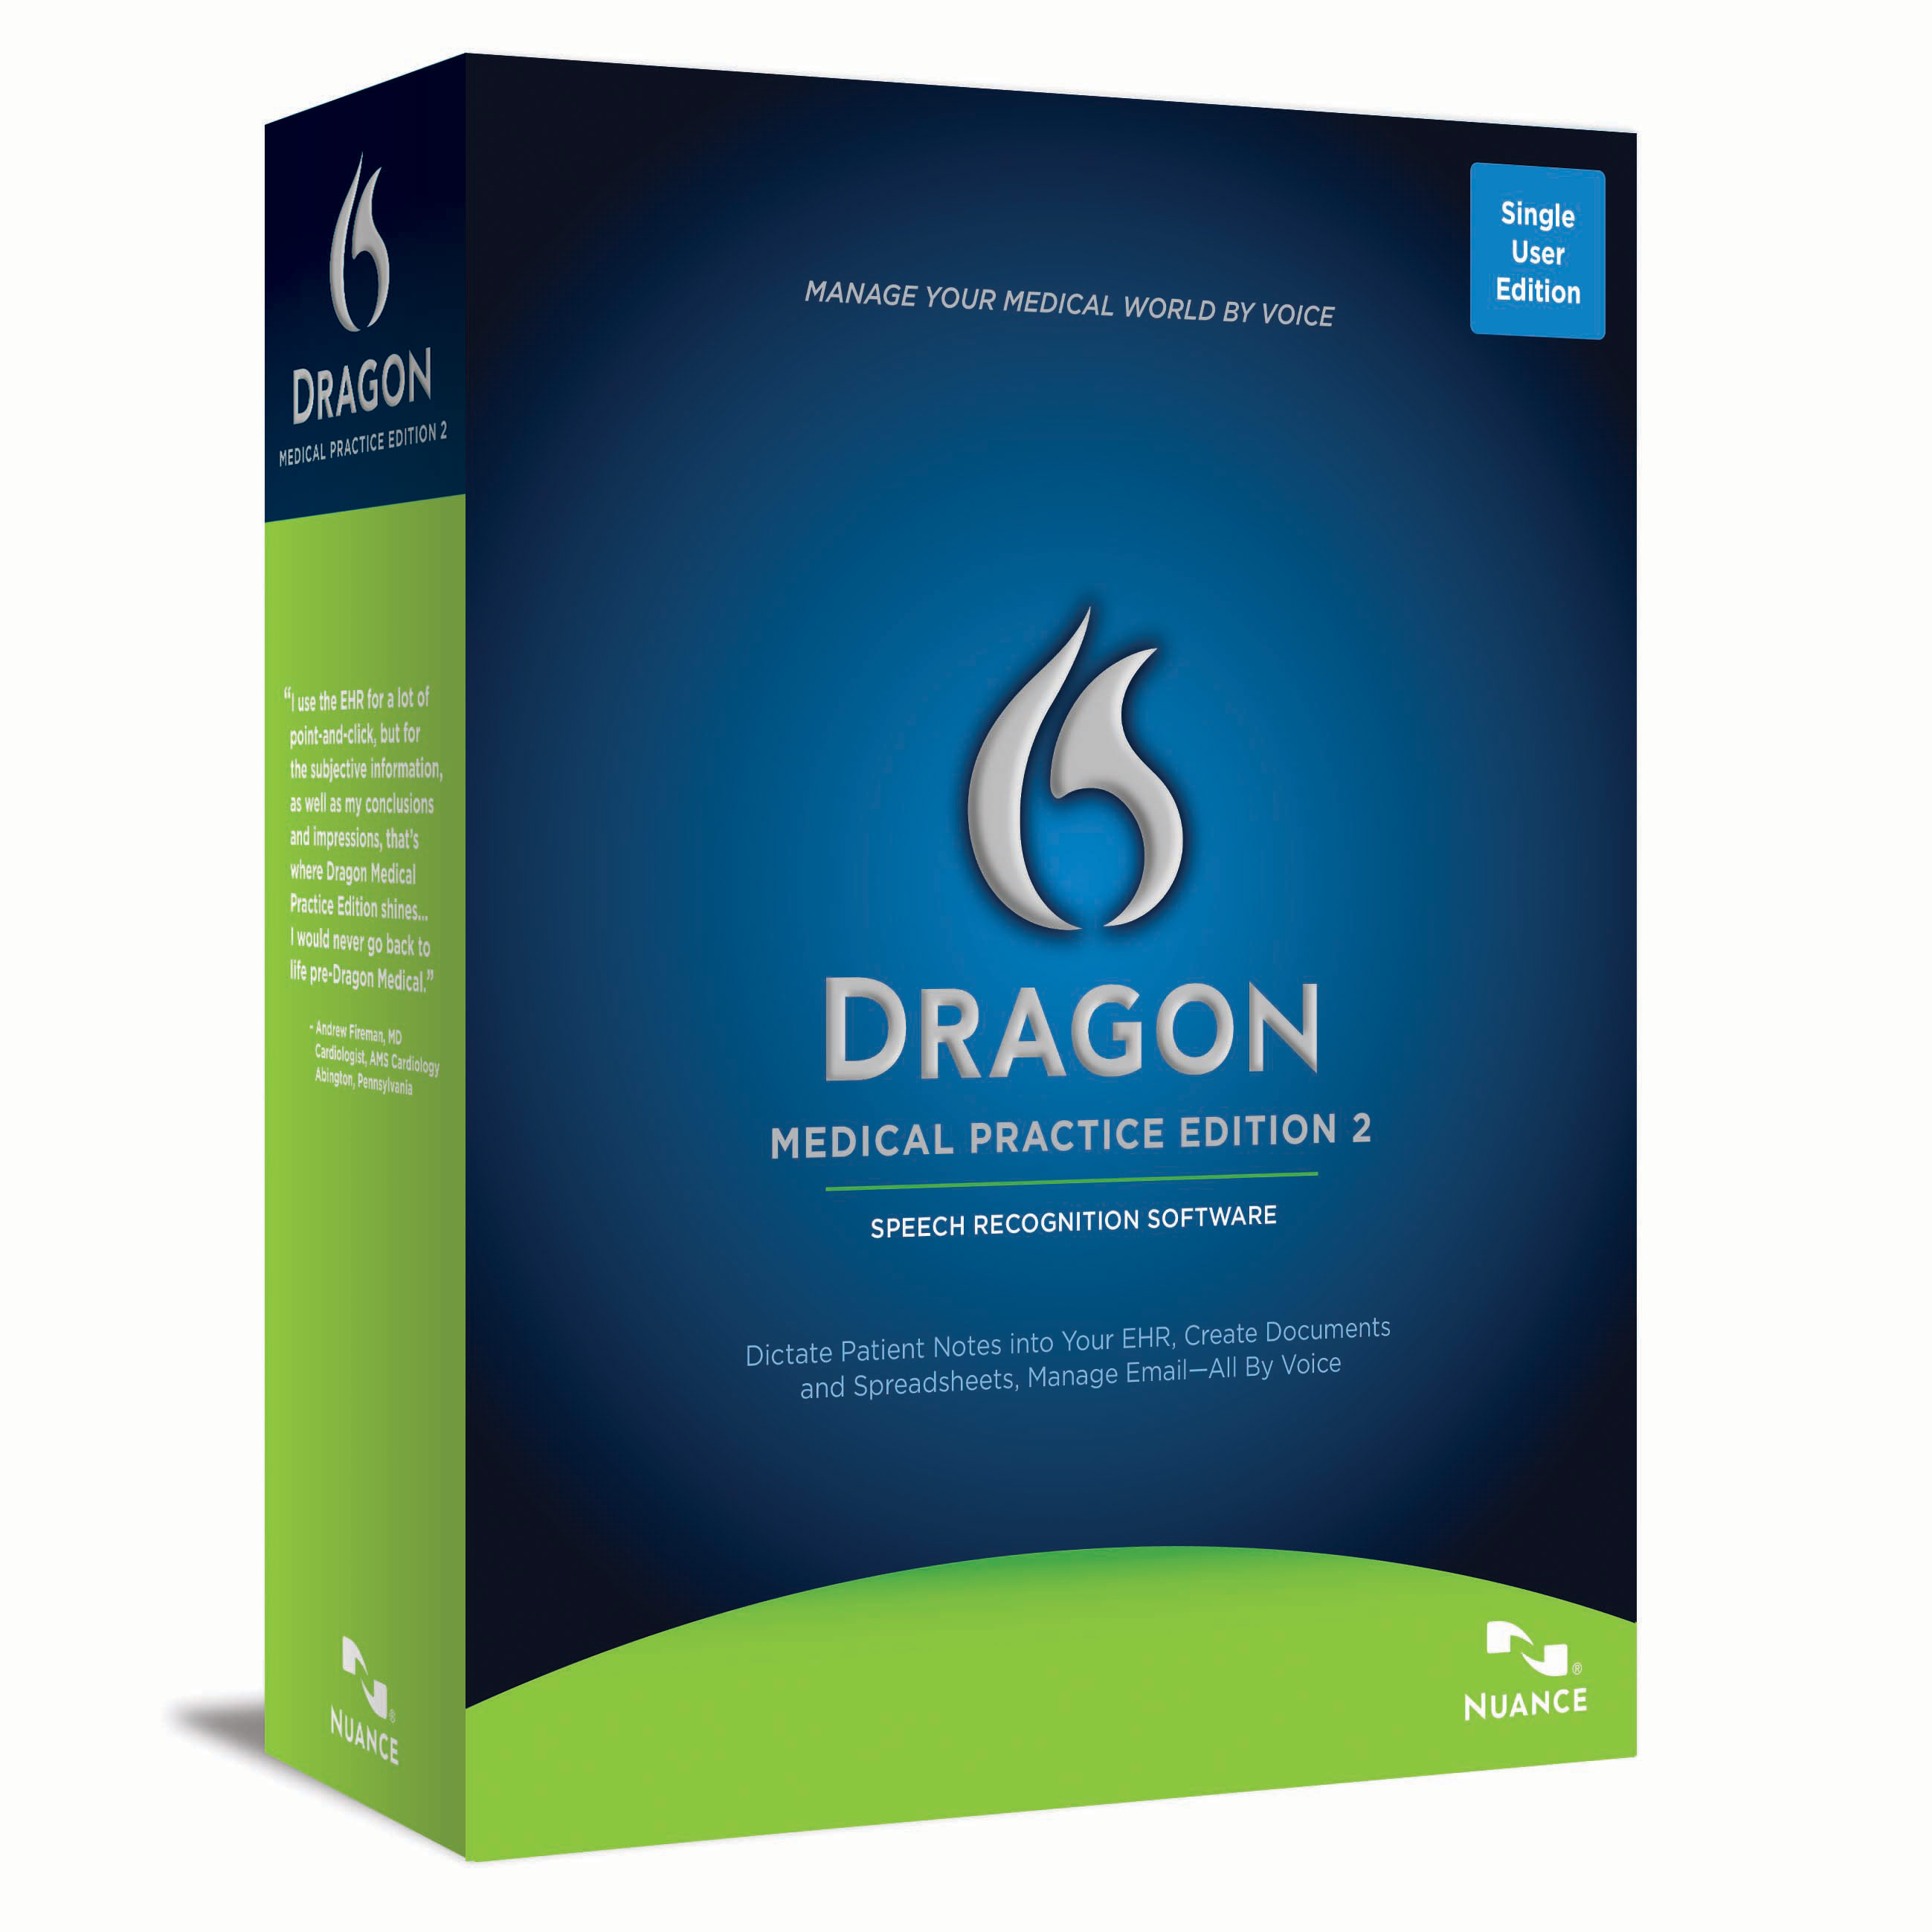 Word Recognition Errors In Dragon Medical Practice Edition 2